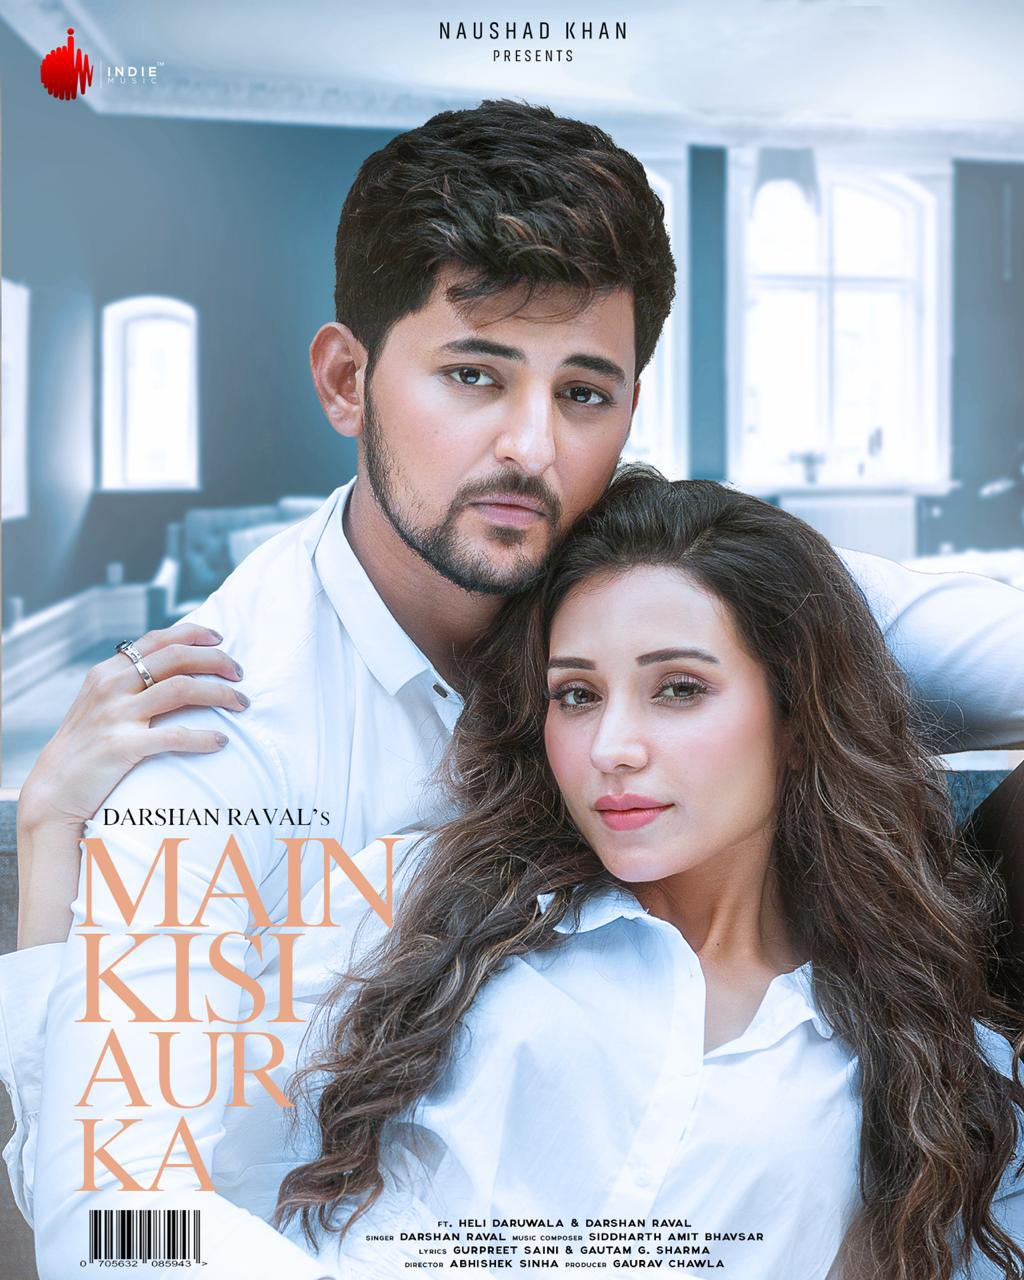 Main Kisi Aur Ka By Darshan Raval Official Music Video 1080p HDRip 70MB Download